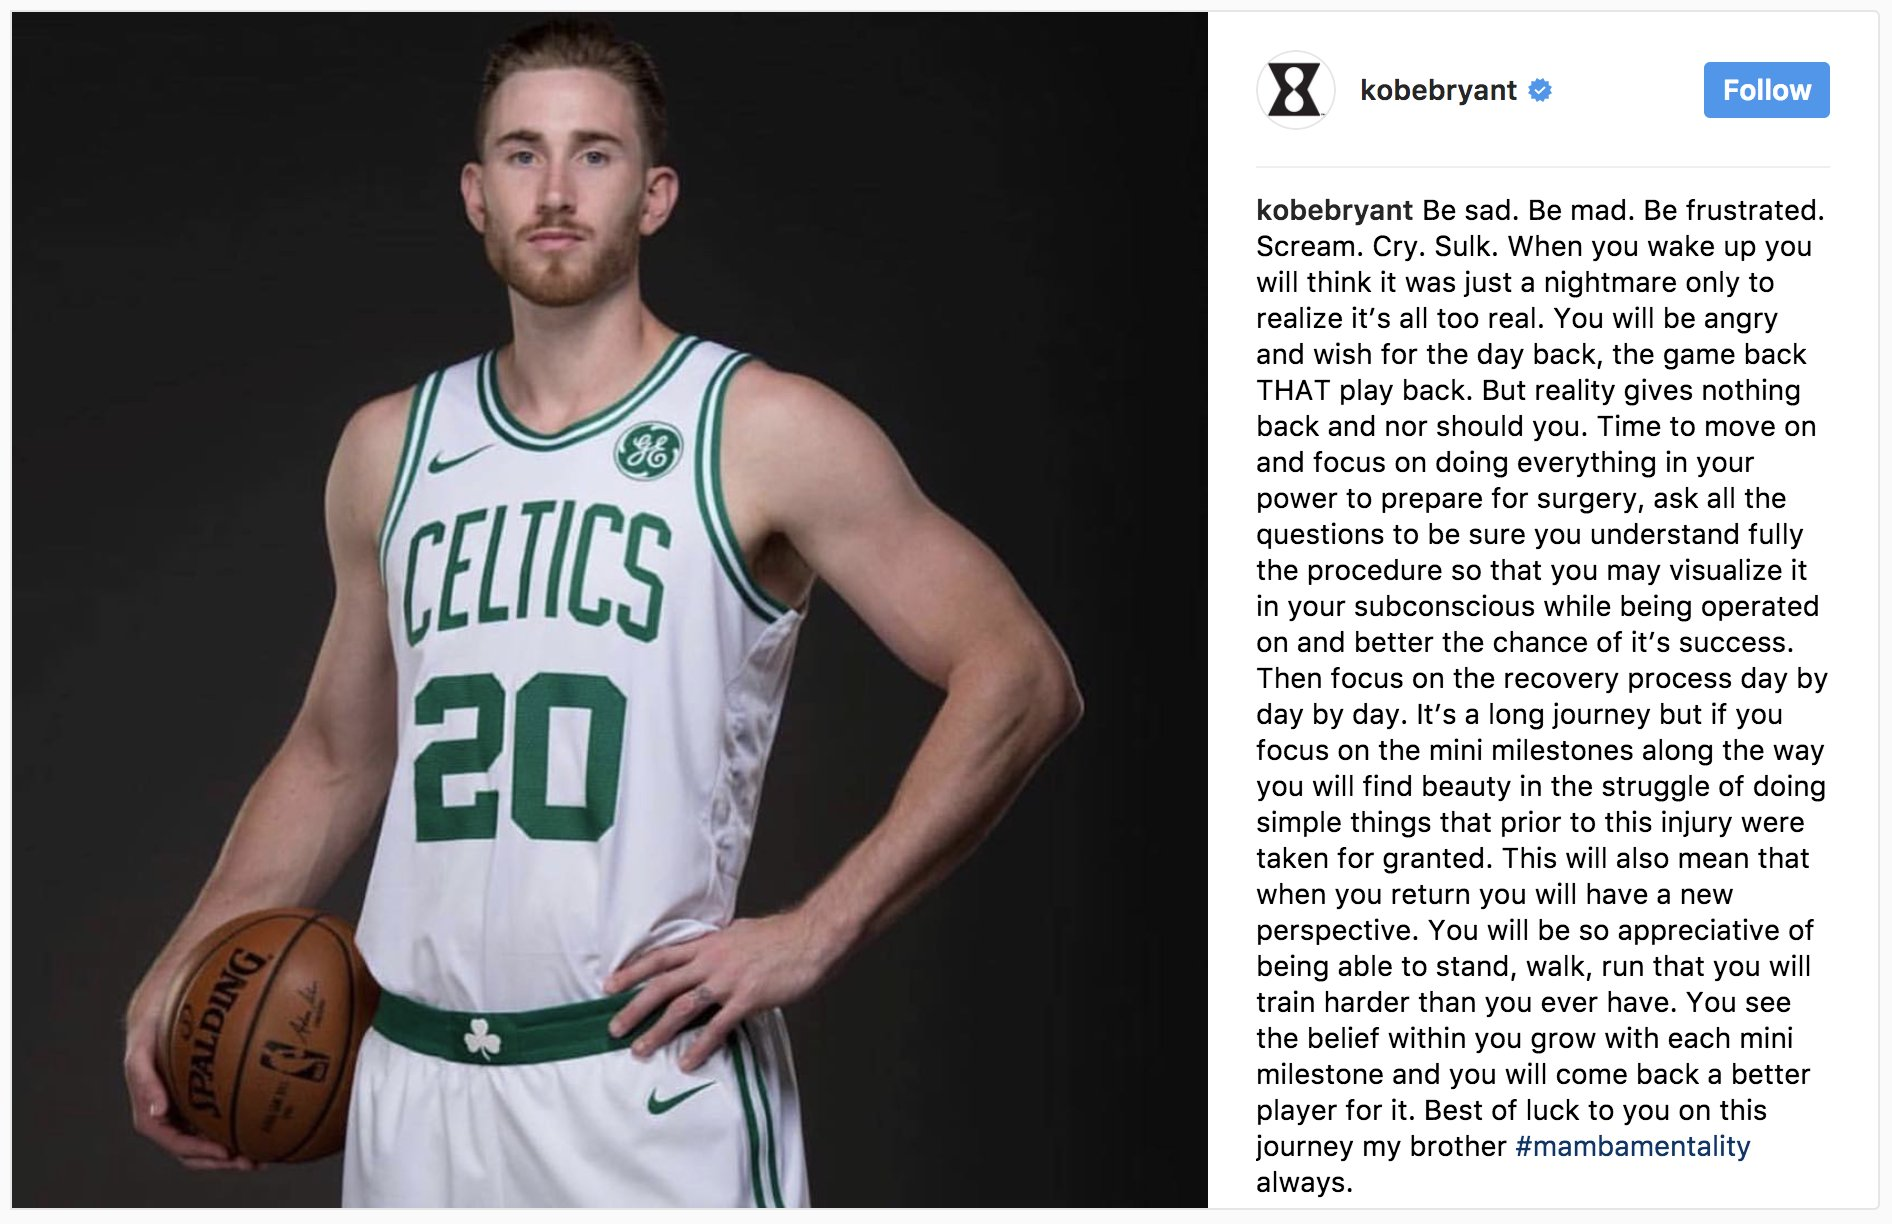 [Image] Kobe's message to Hayward after his injury